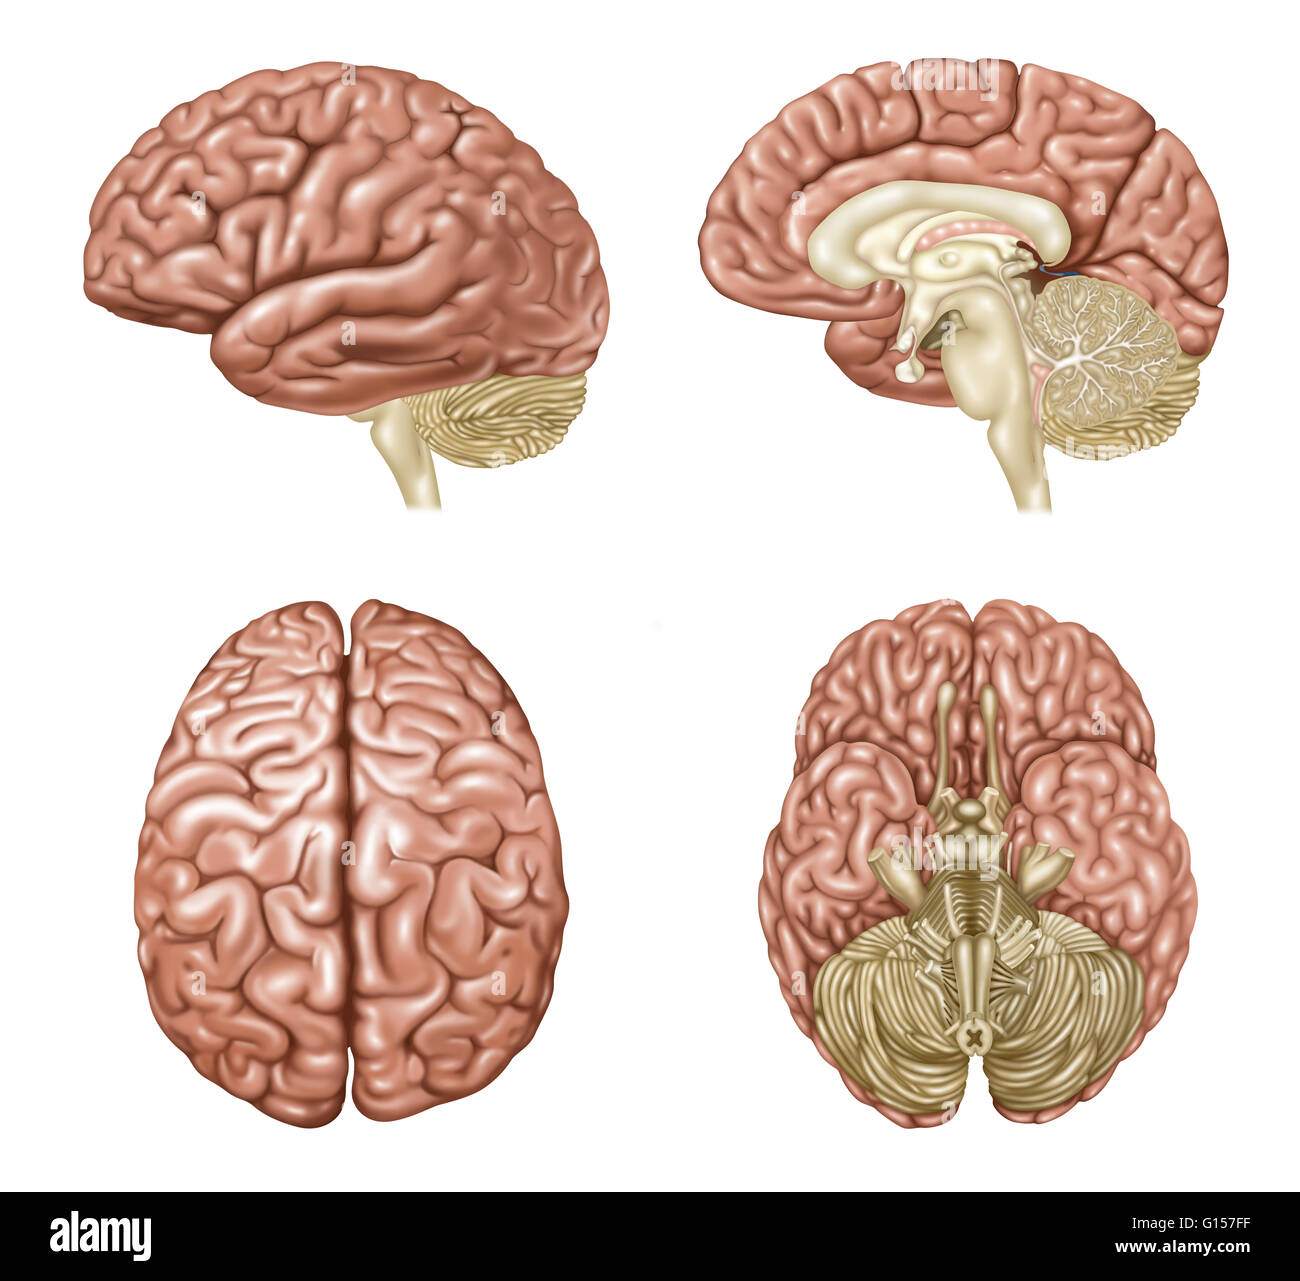 Sagittal View Stock Photos Sagittal View Stock Images Alamy